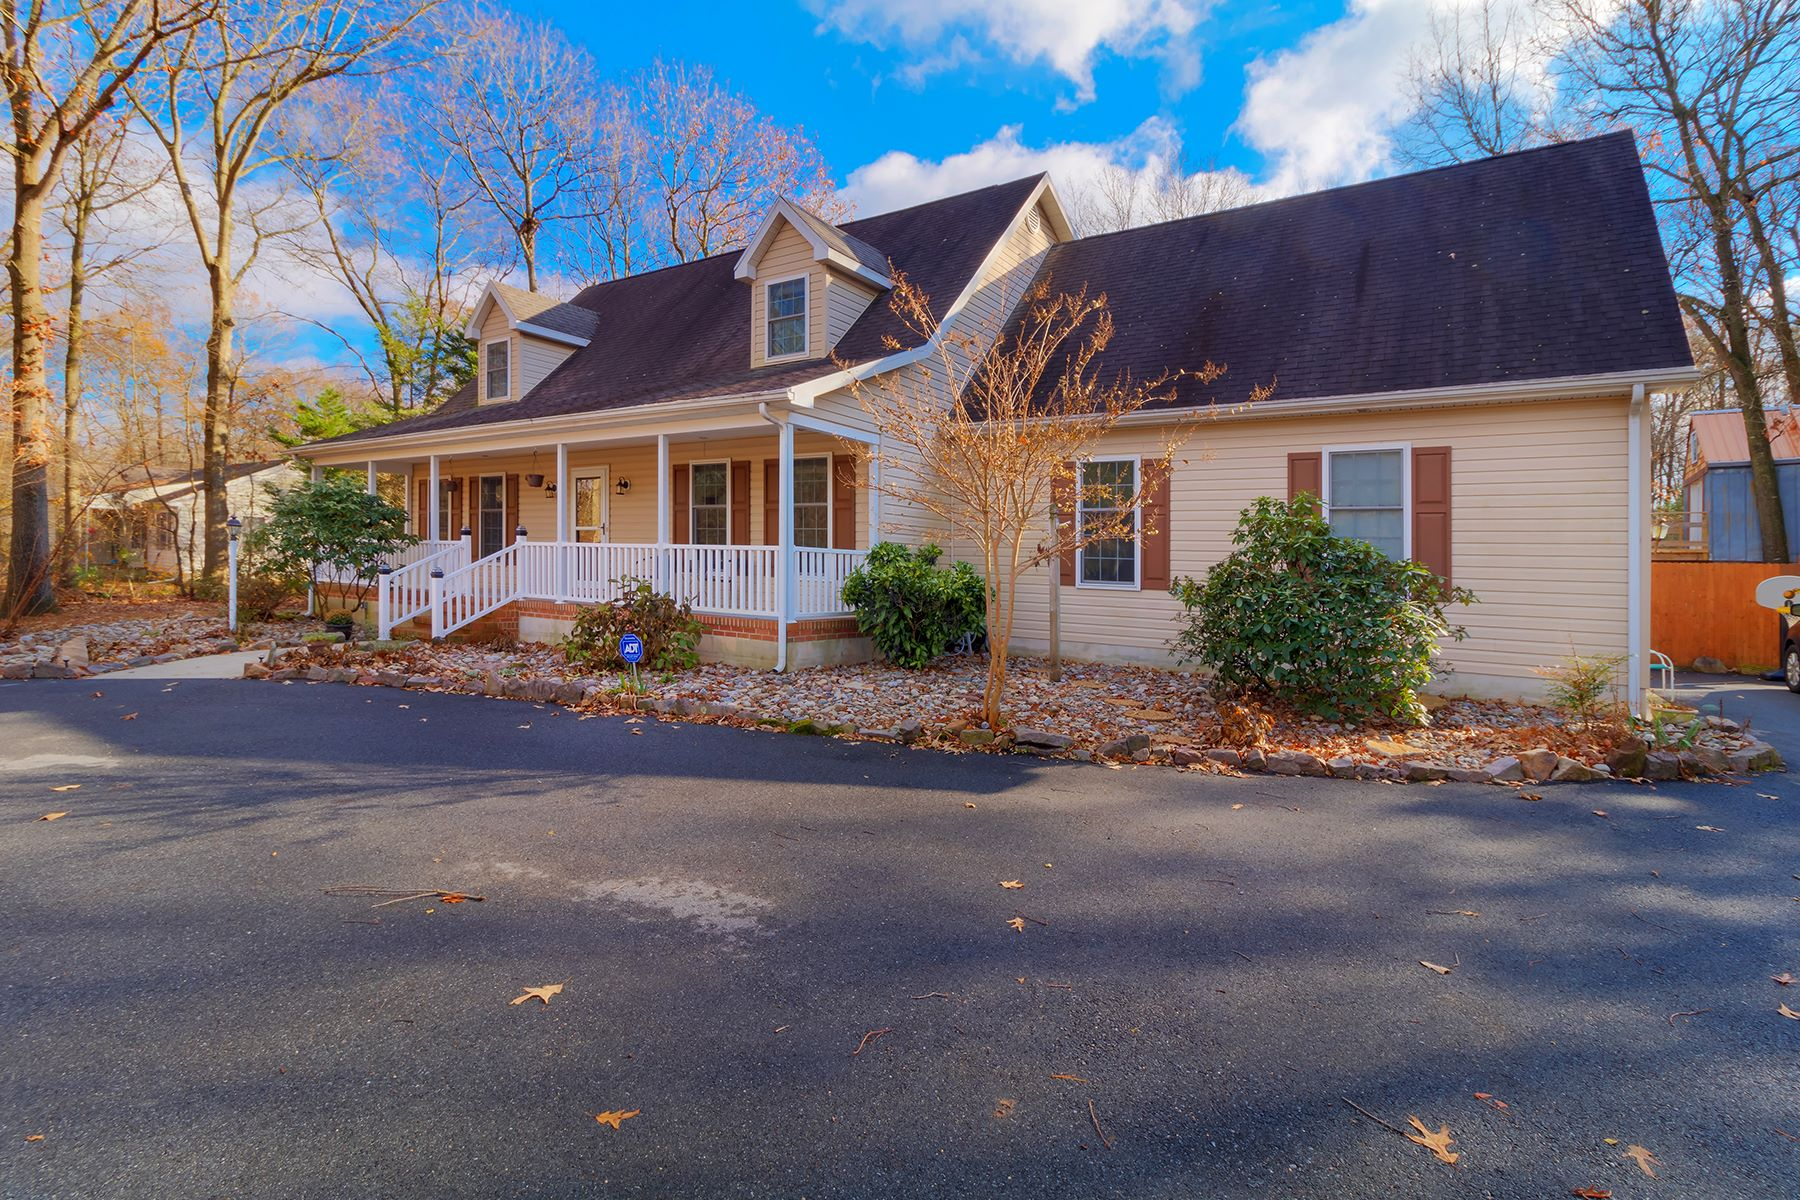 Single Family Home for Sale at 14328 Shiloh Church Road , Laurel, DE 19956 14328 Shiloh Church Road Laurel, 19956 United States